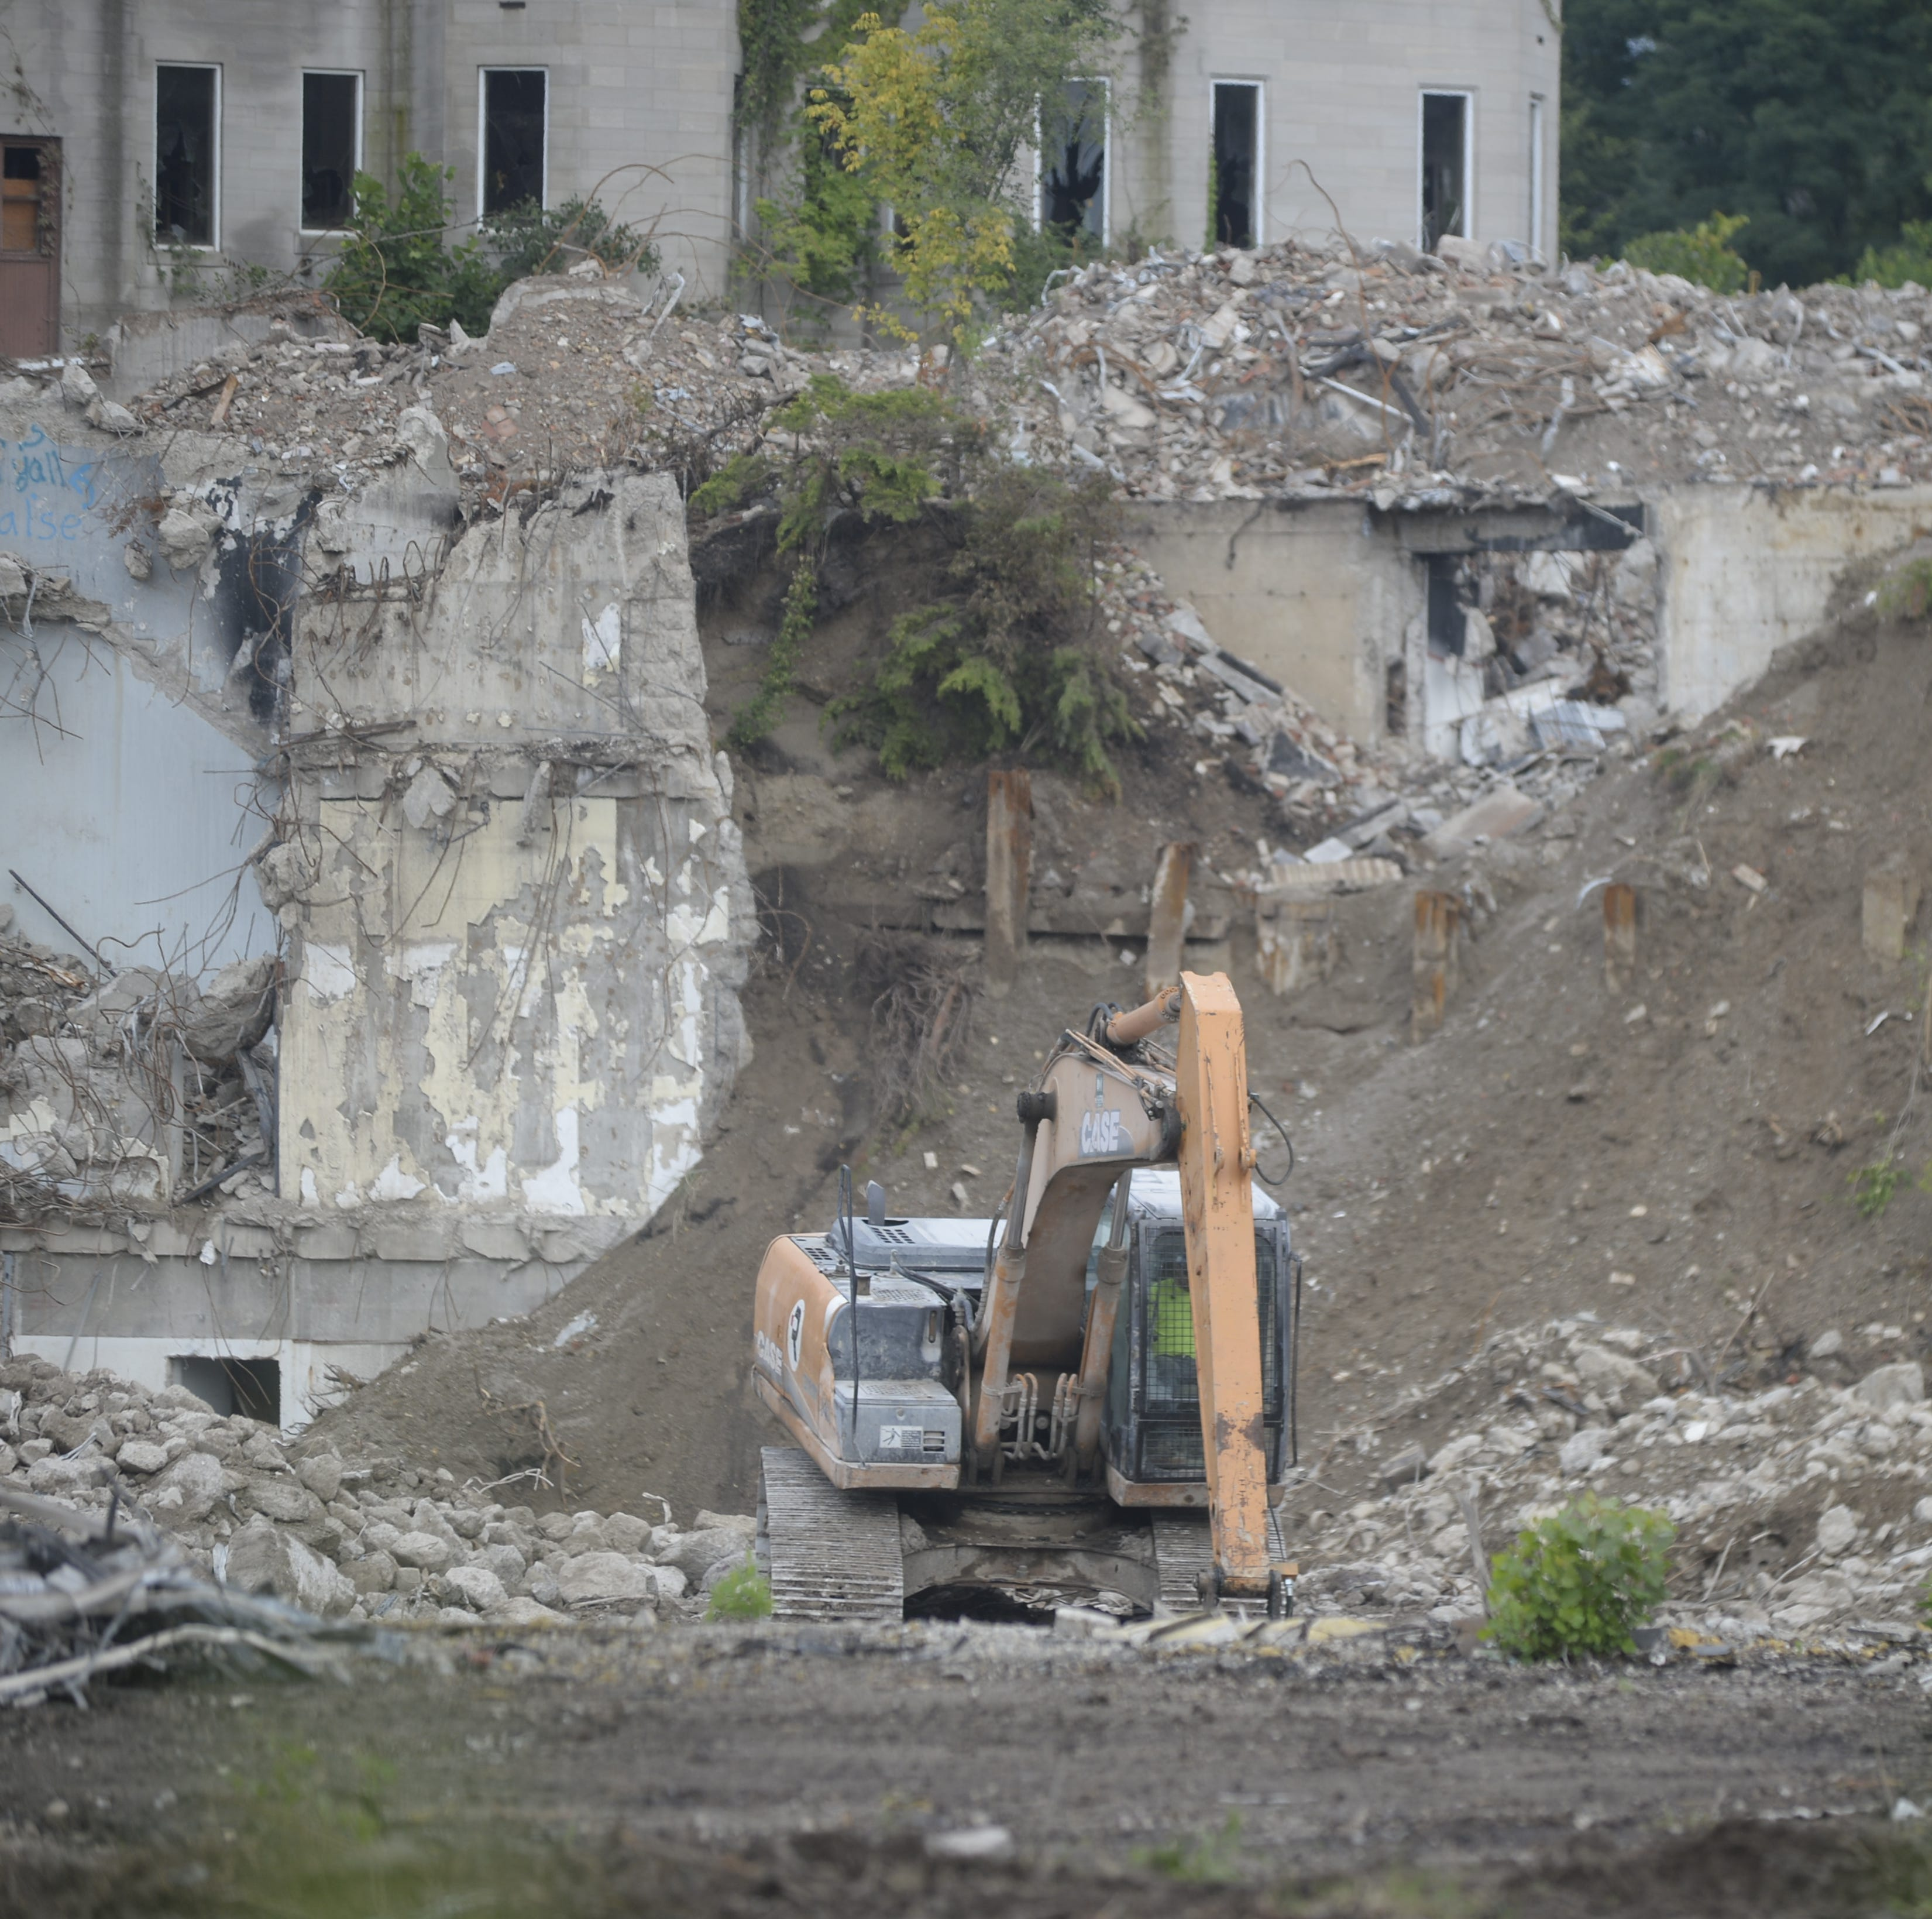 Workers from Renascent on Tuesday morning sort through debris in the hole created by the demolition of Leeds Tower and the service wings of the former Reid Hospital campus.